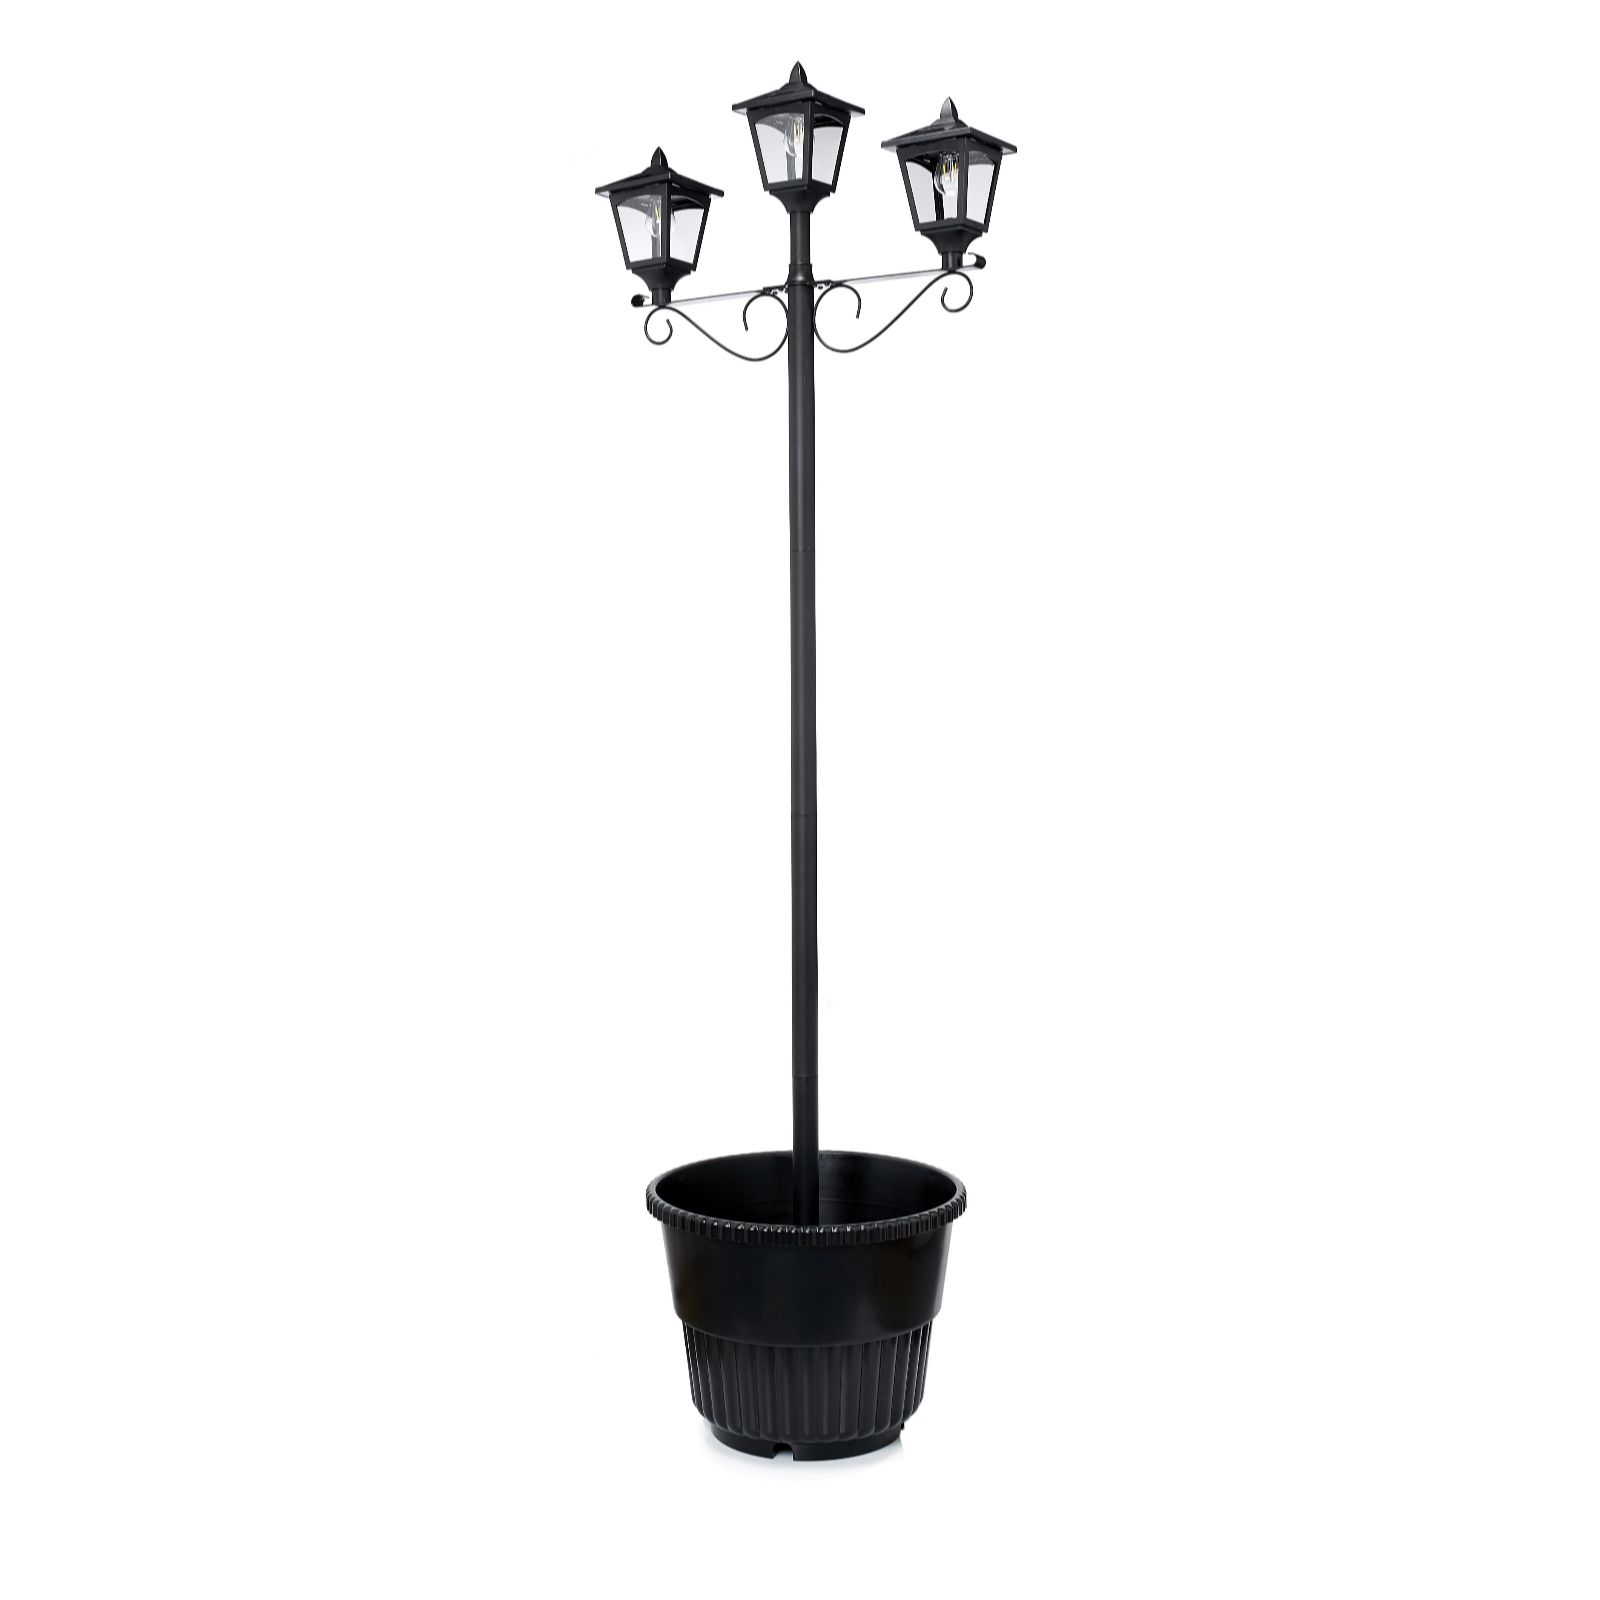 Solithia Three Headed Solar Lamp Post